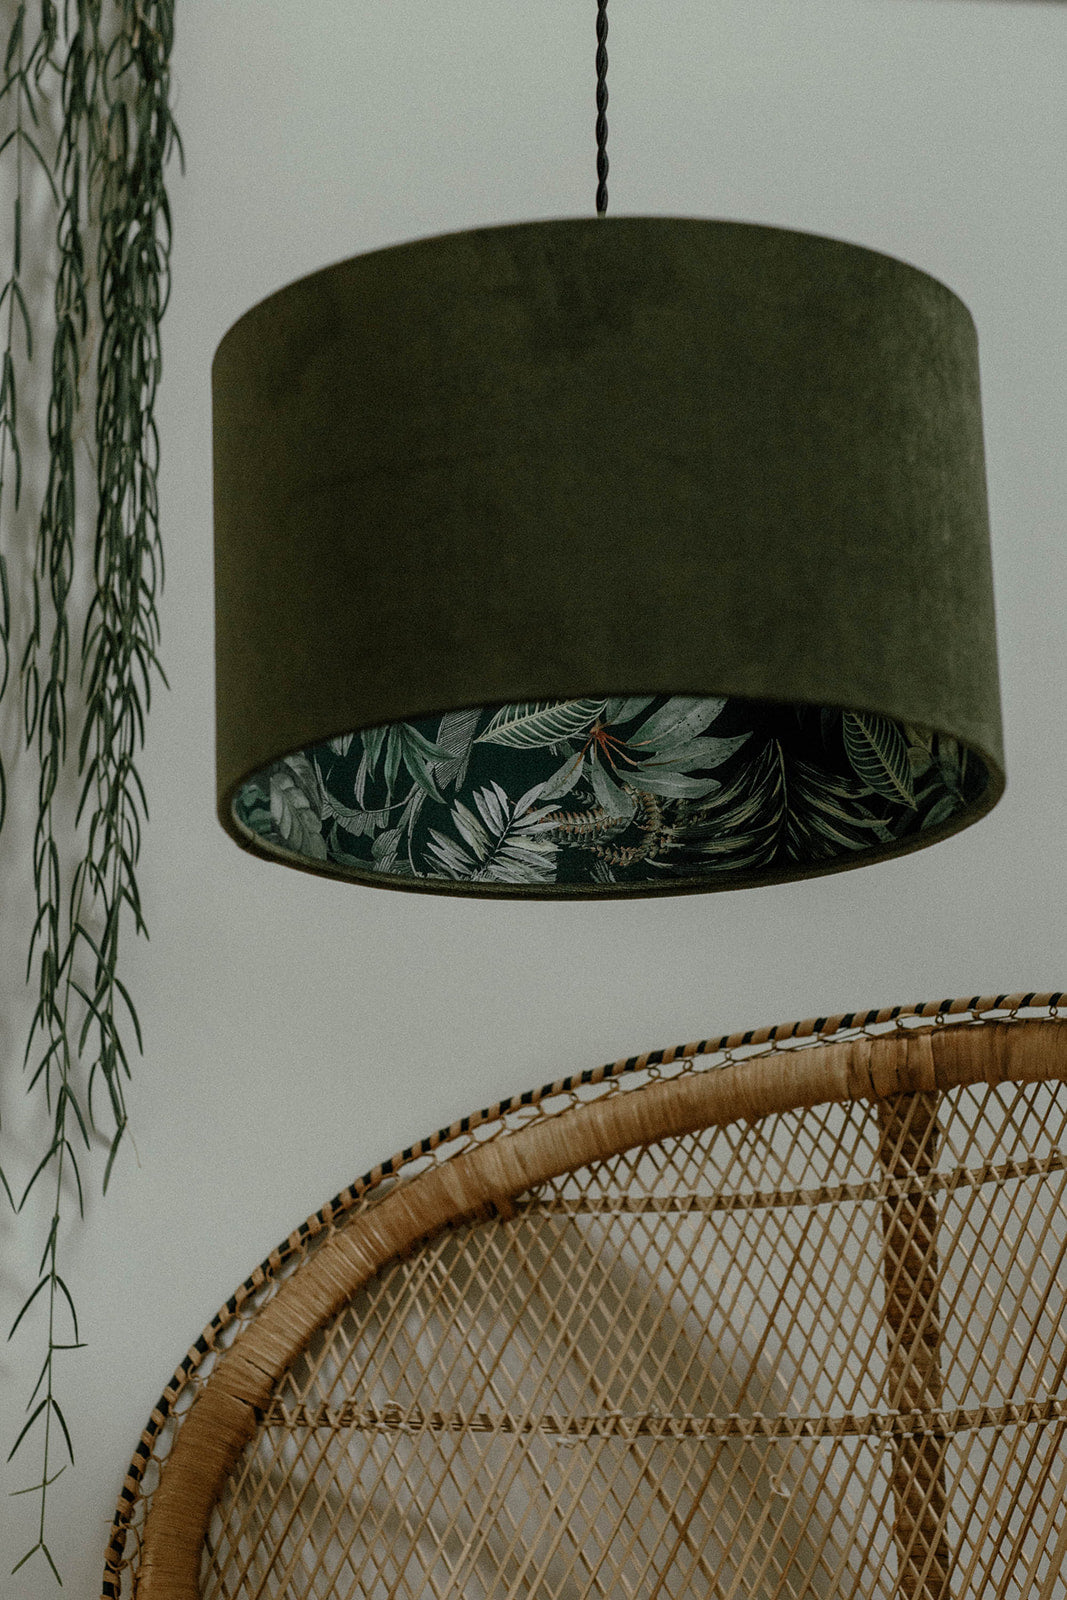 Dark jungle silhouette lampshade with green velvet